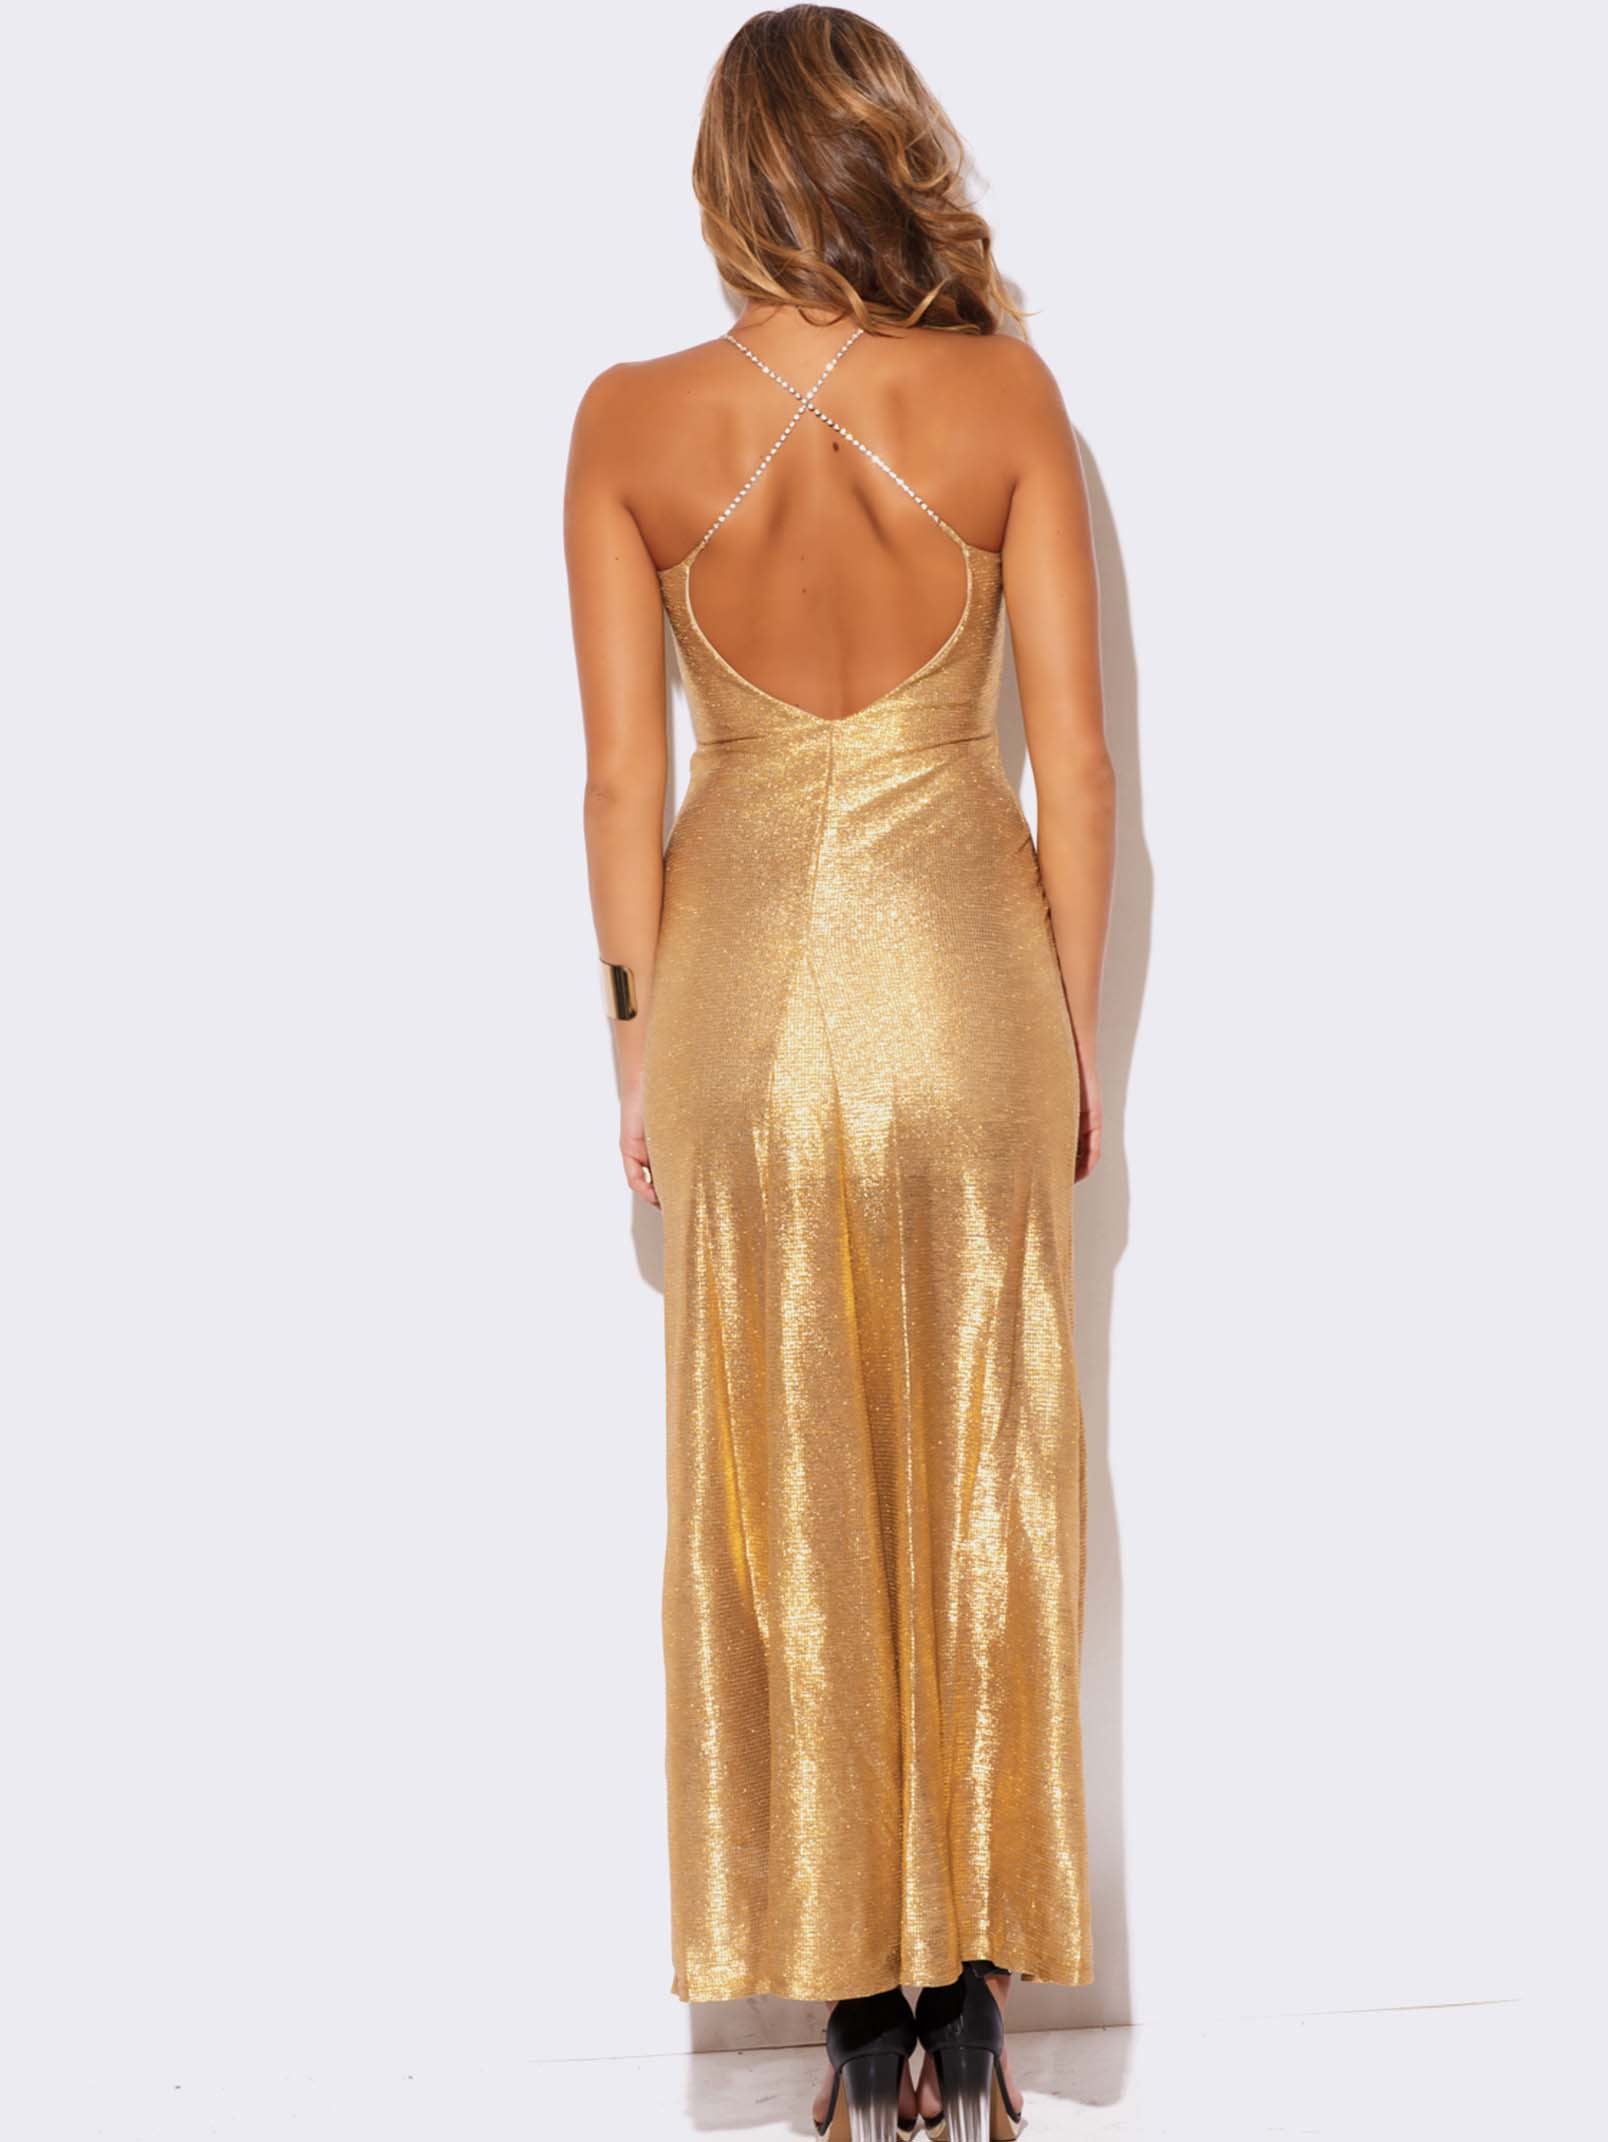 Gold Metallic Evening Dress Modishonline Com